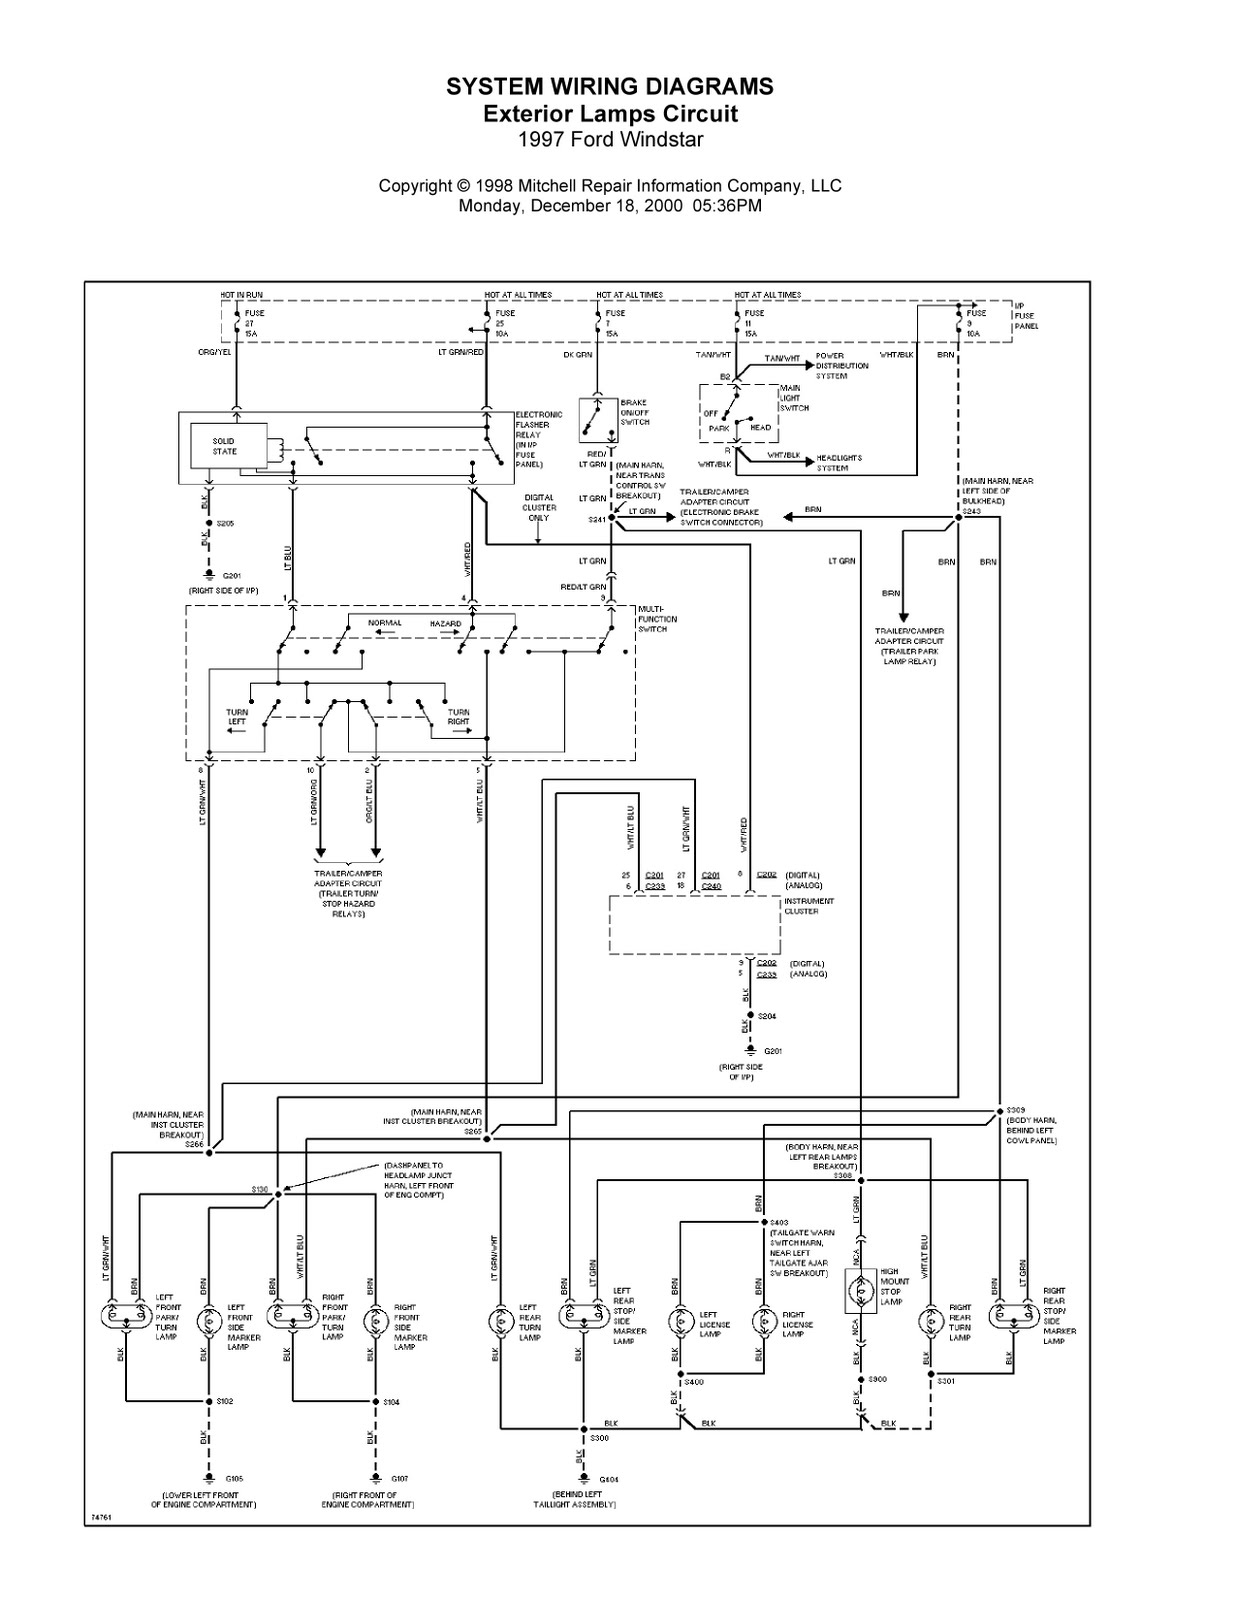 2000 Ford Taurus Alternator Wiring Diagram Push Pull Pot Electrical The Best Html